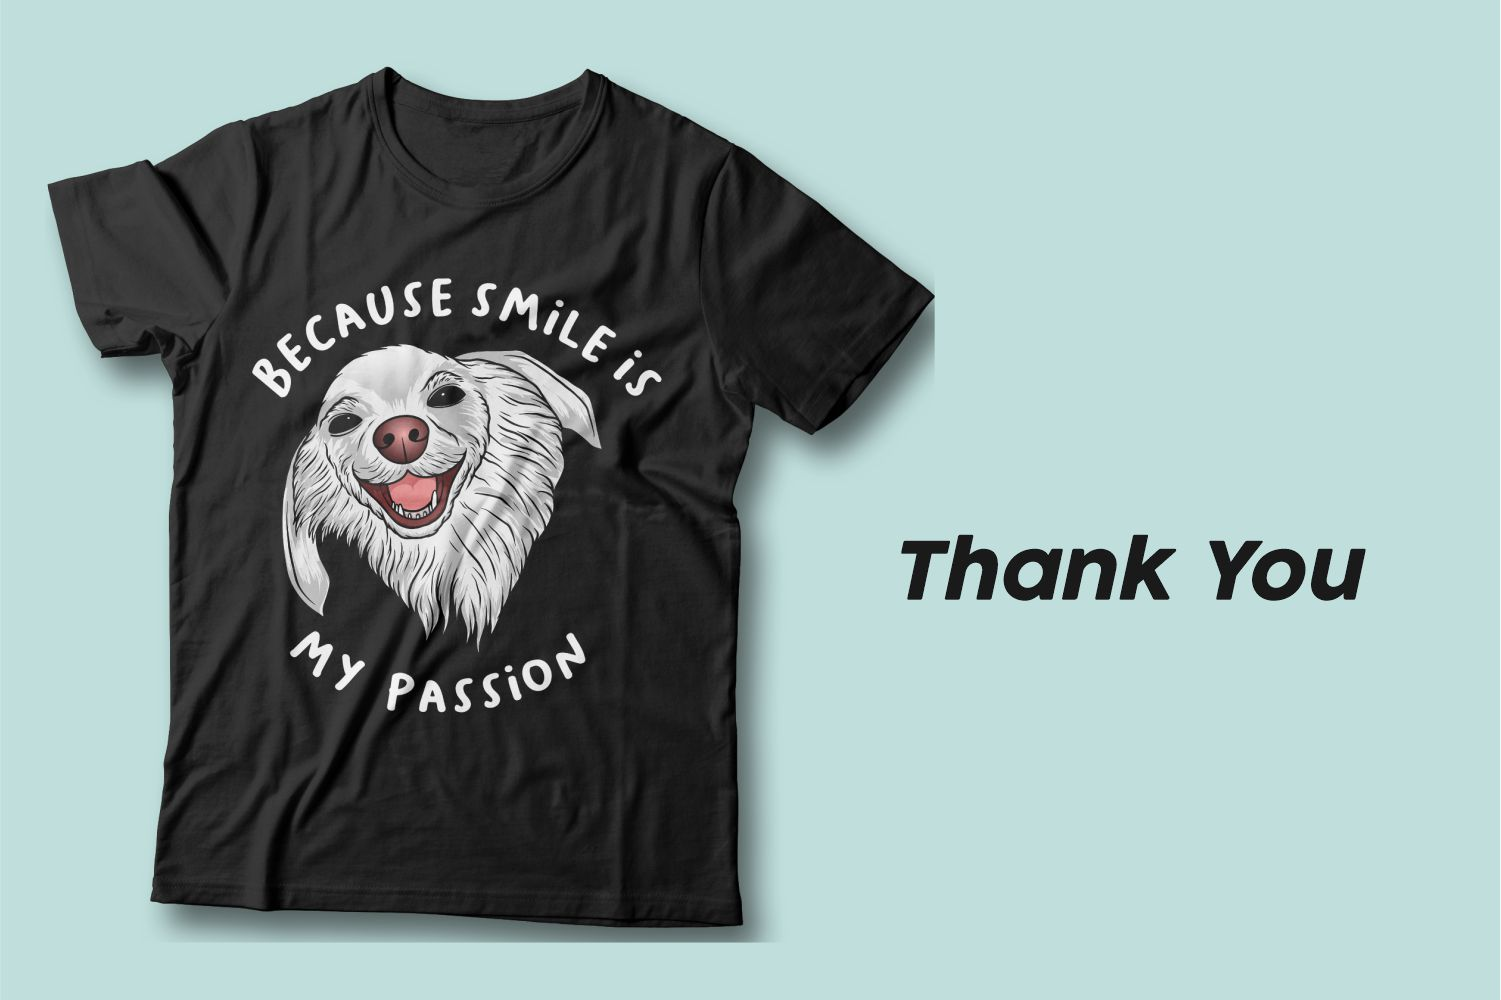 The gray eared dog says smiles to us from a black T-shirt.